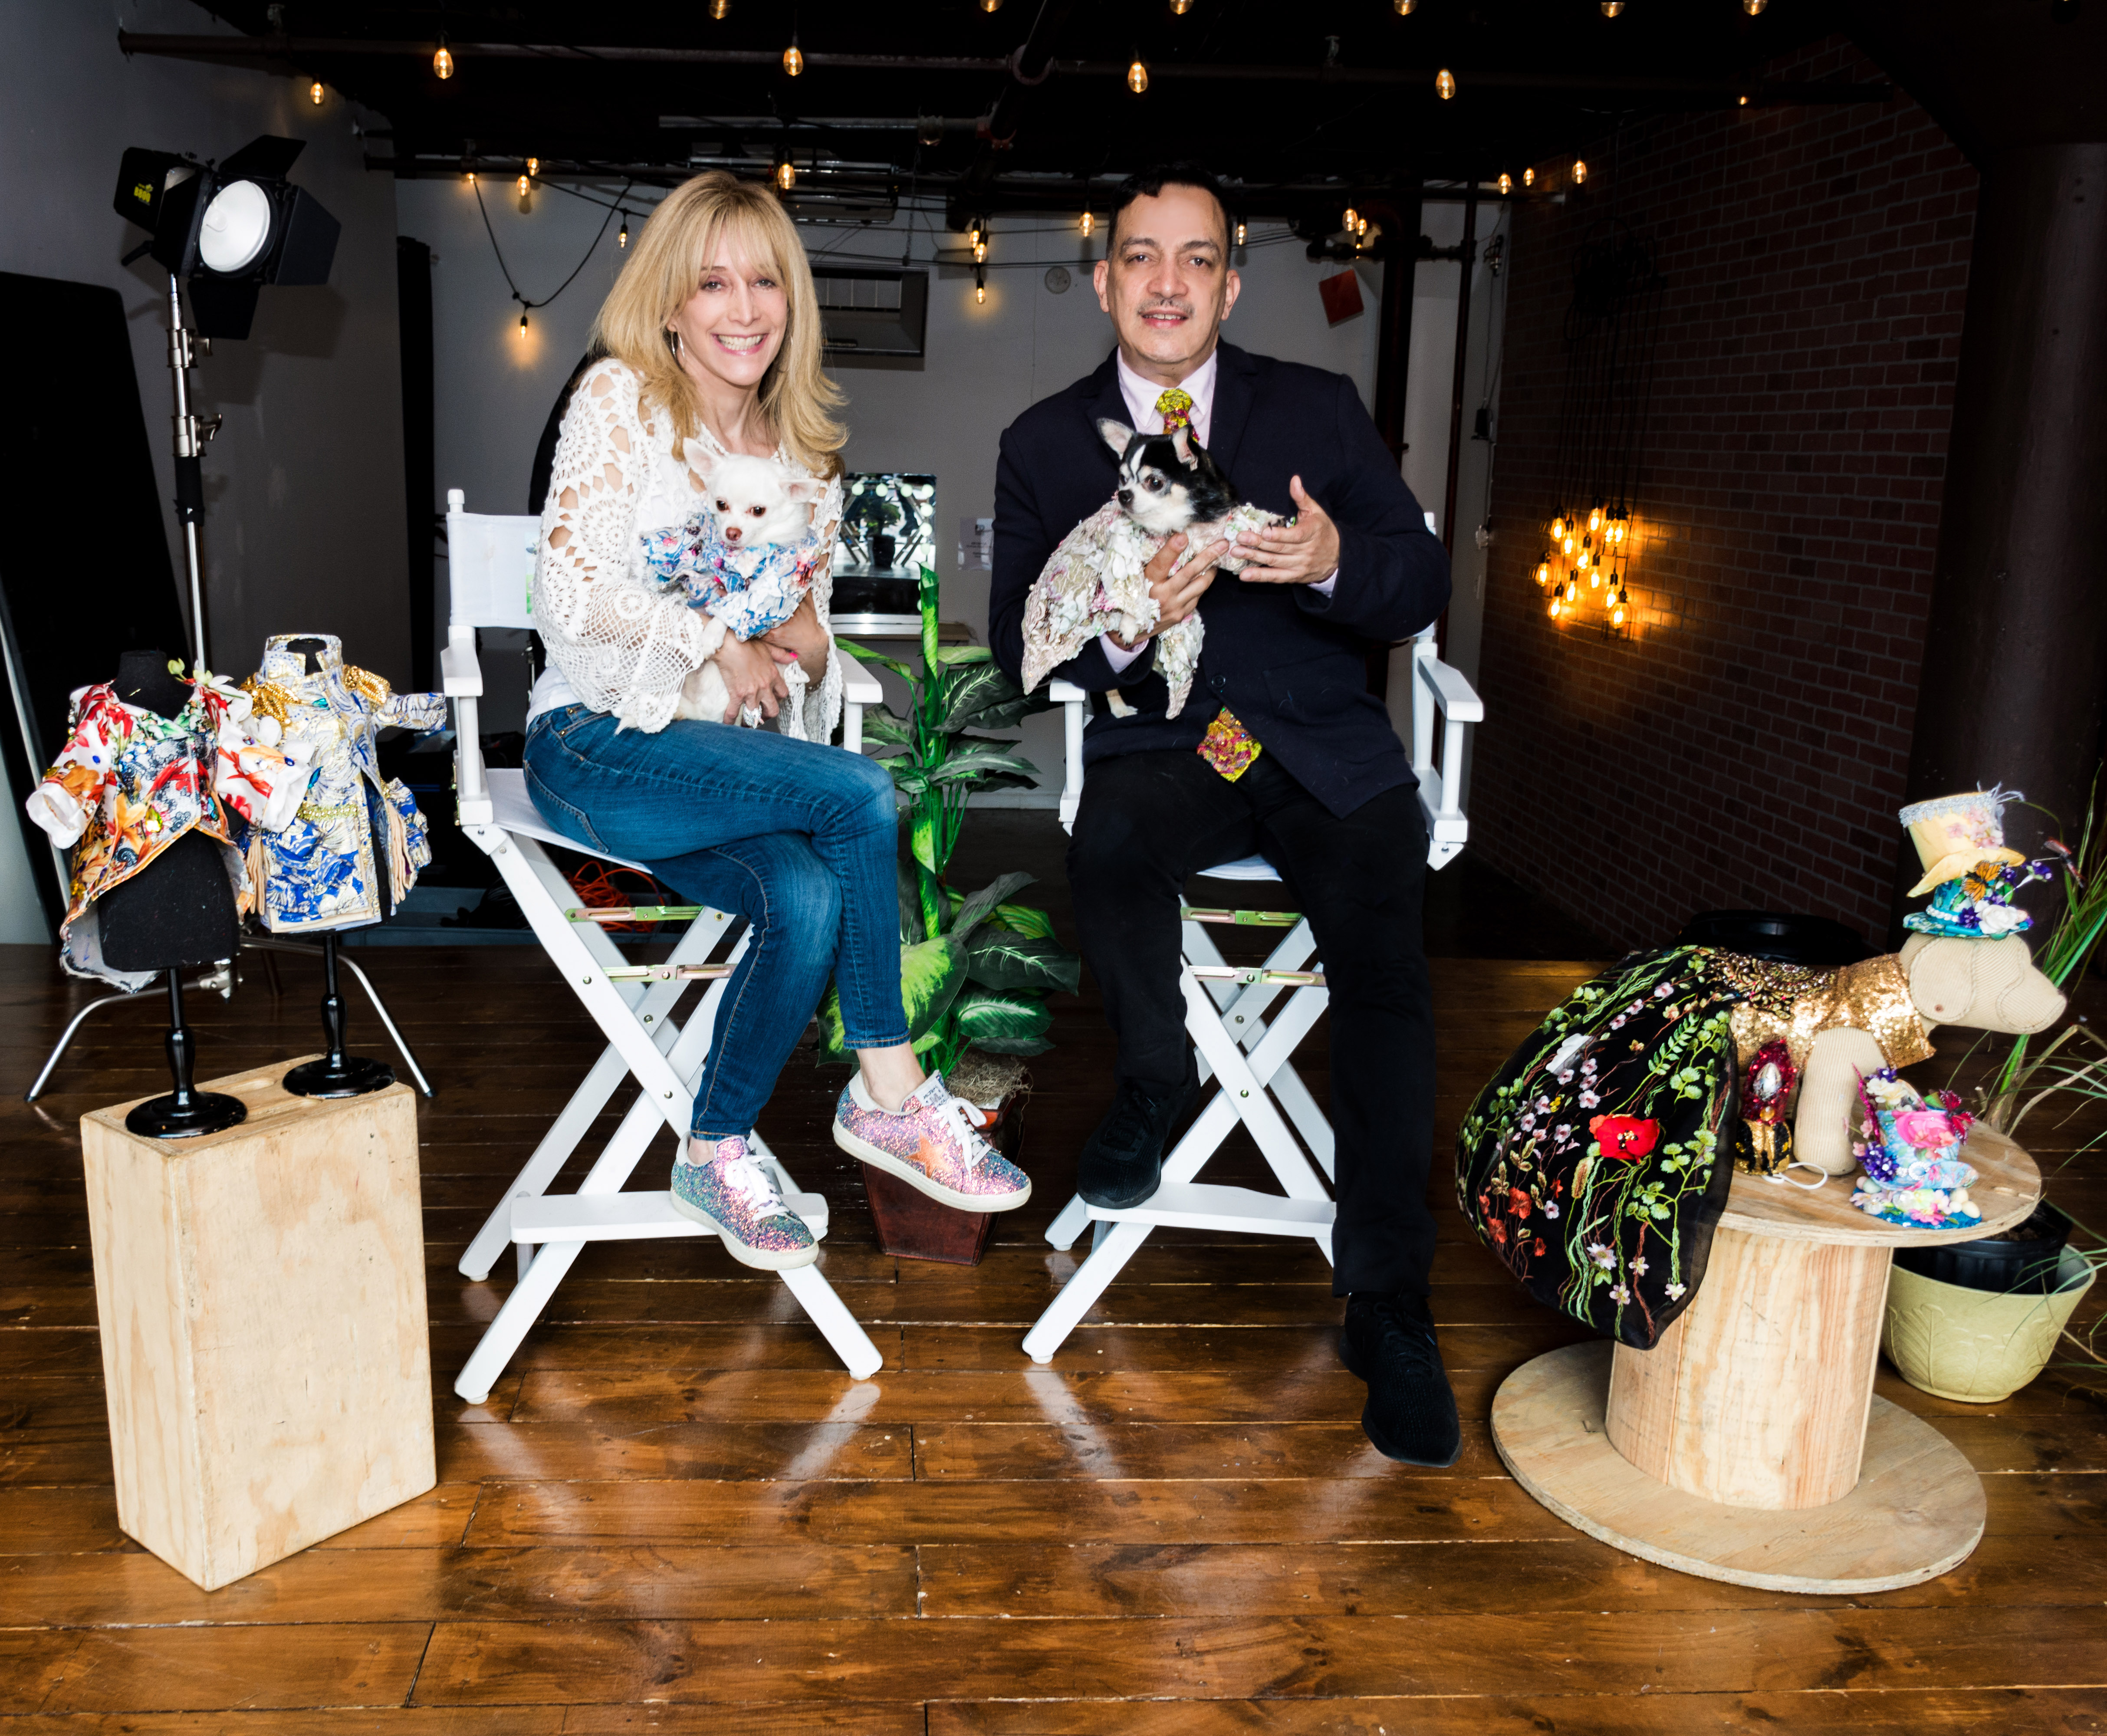 Anthony Rubio's interview with Lauren Collier for new TV show - Dog Fashion